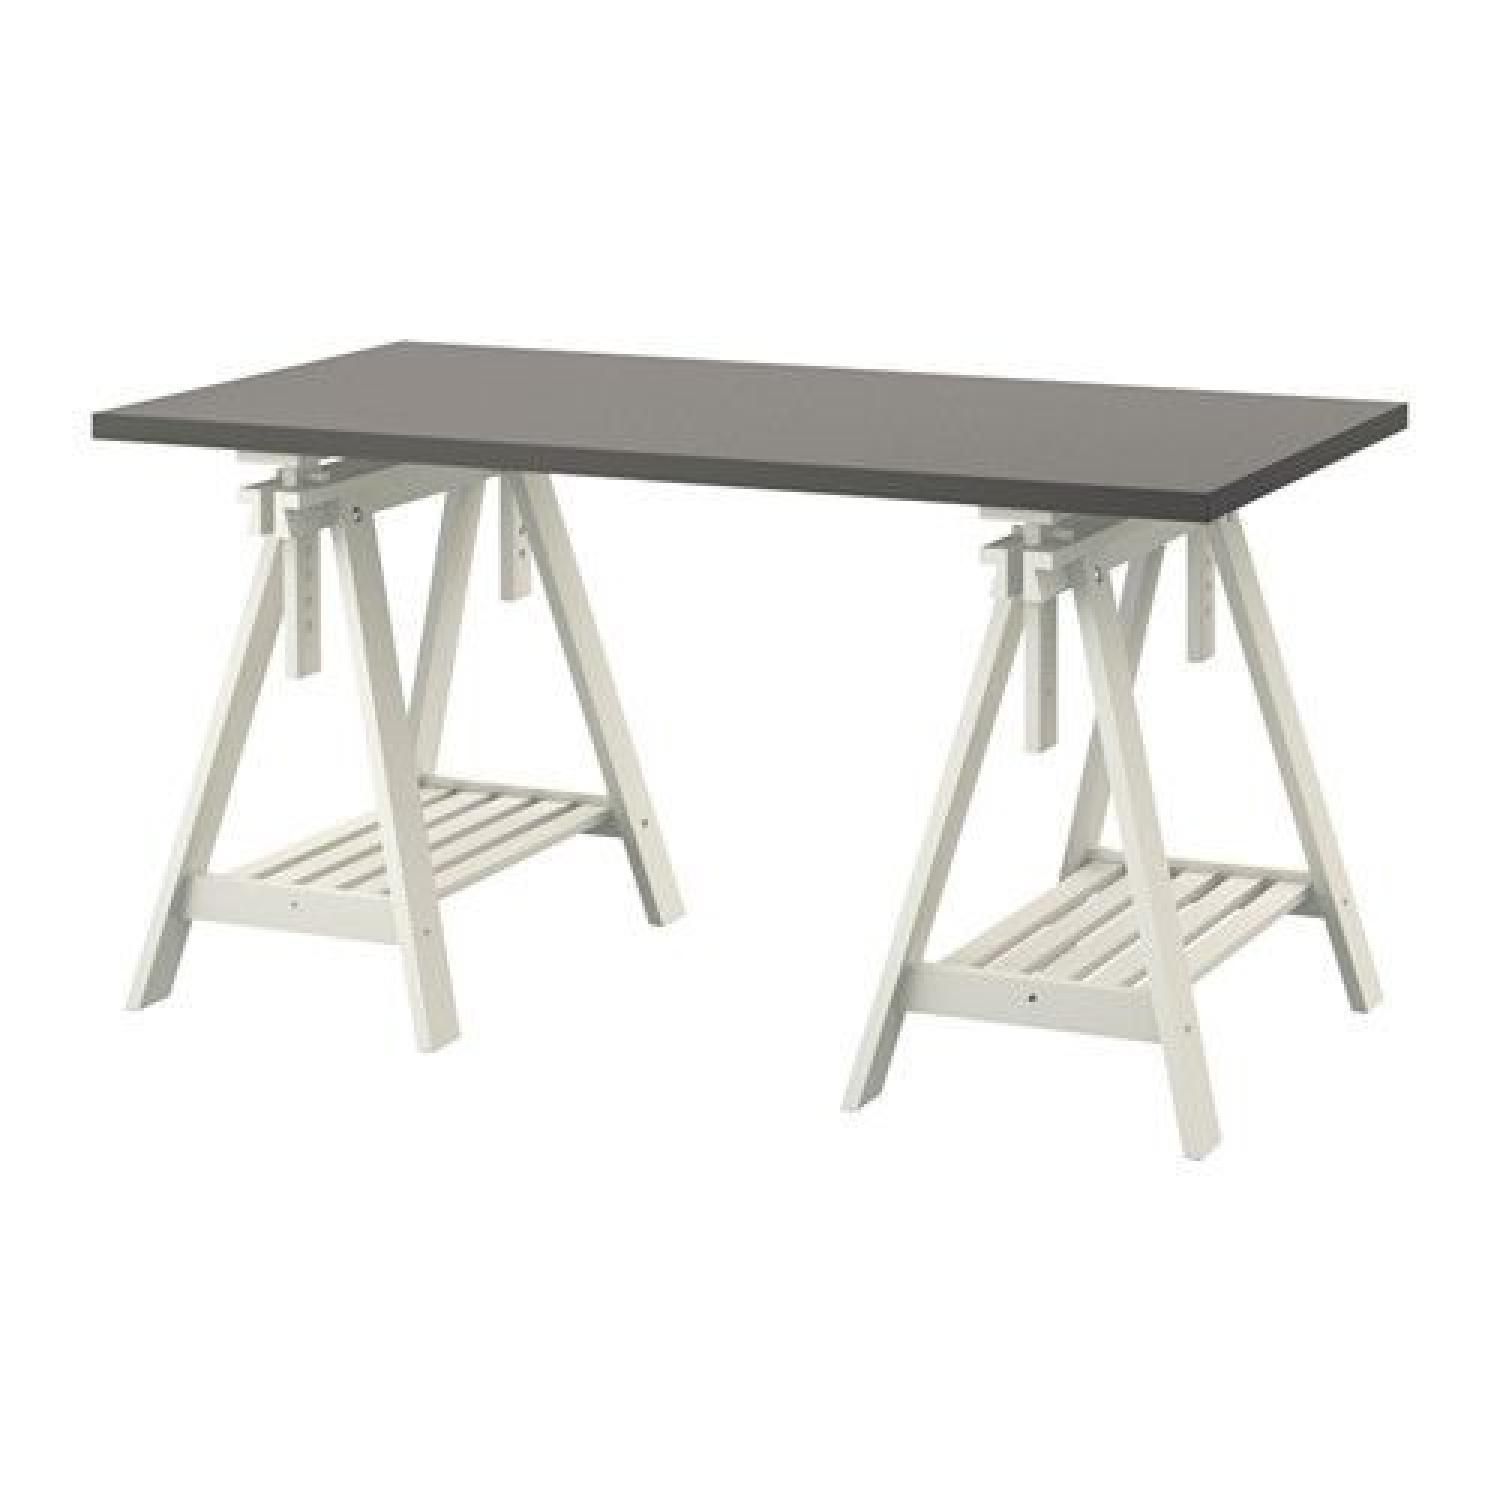 Ikea Grey Top Dining Table w/ Adjustable Trestle Legs